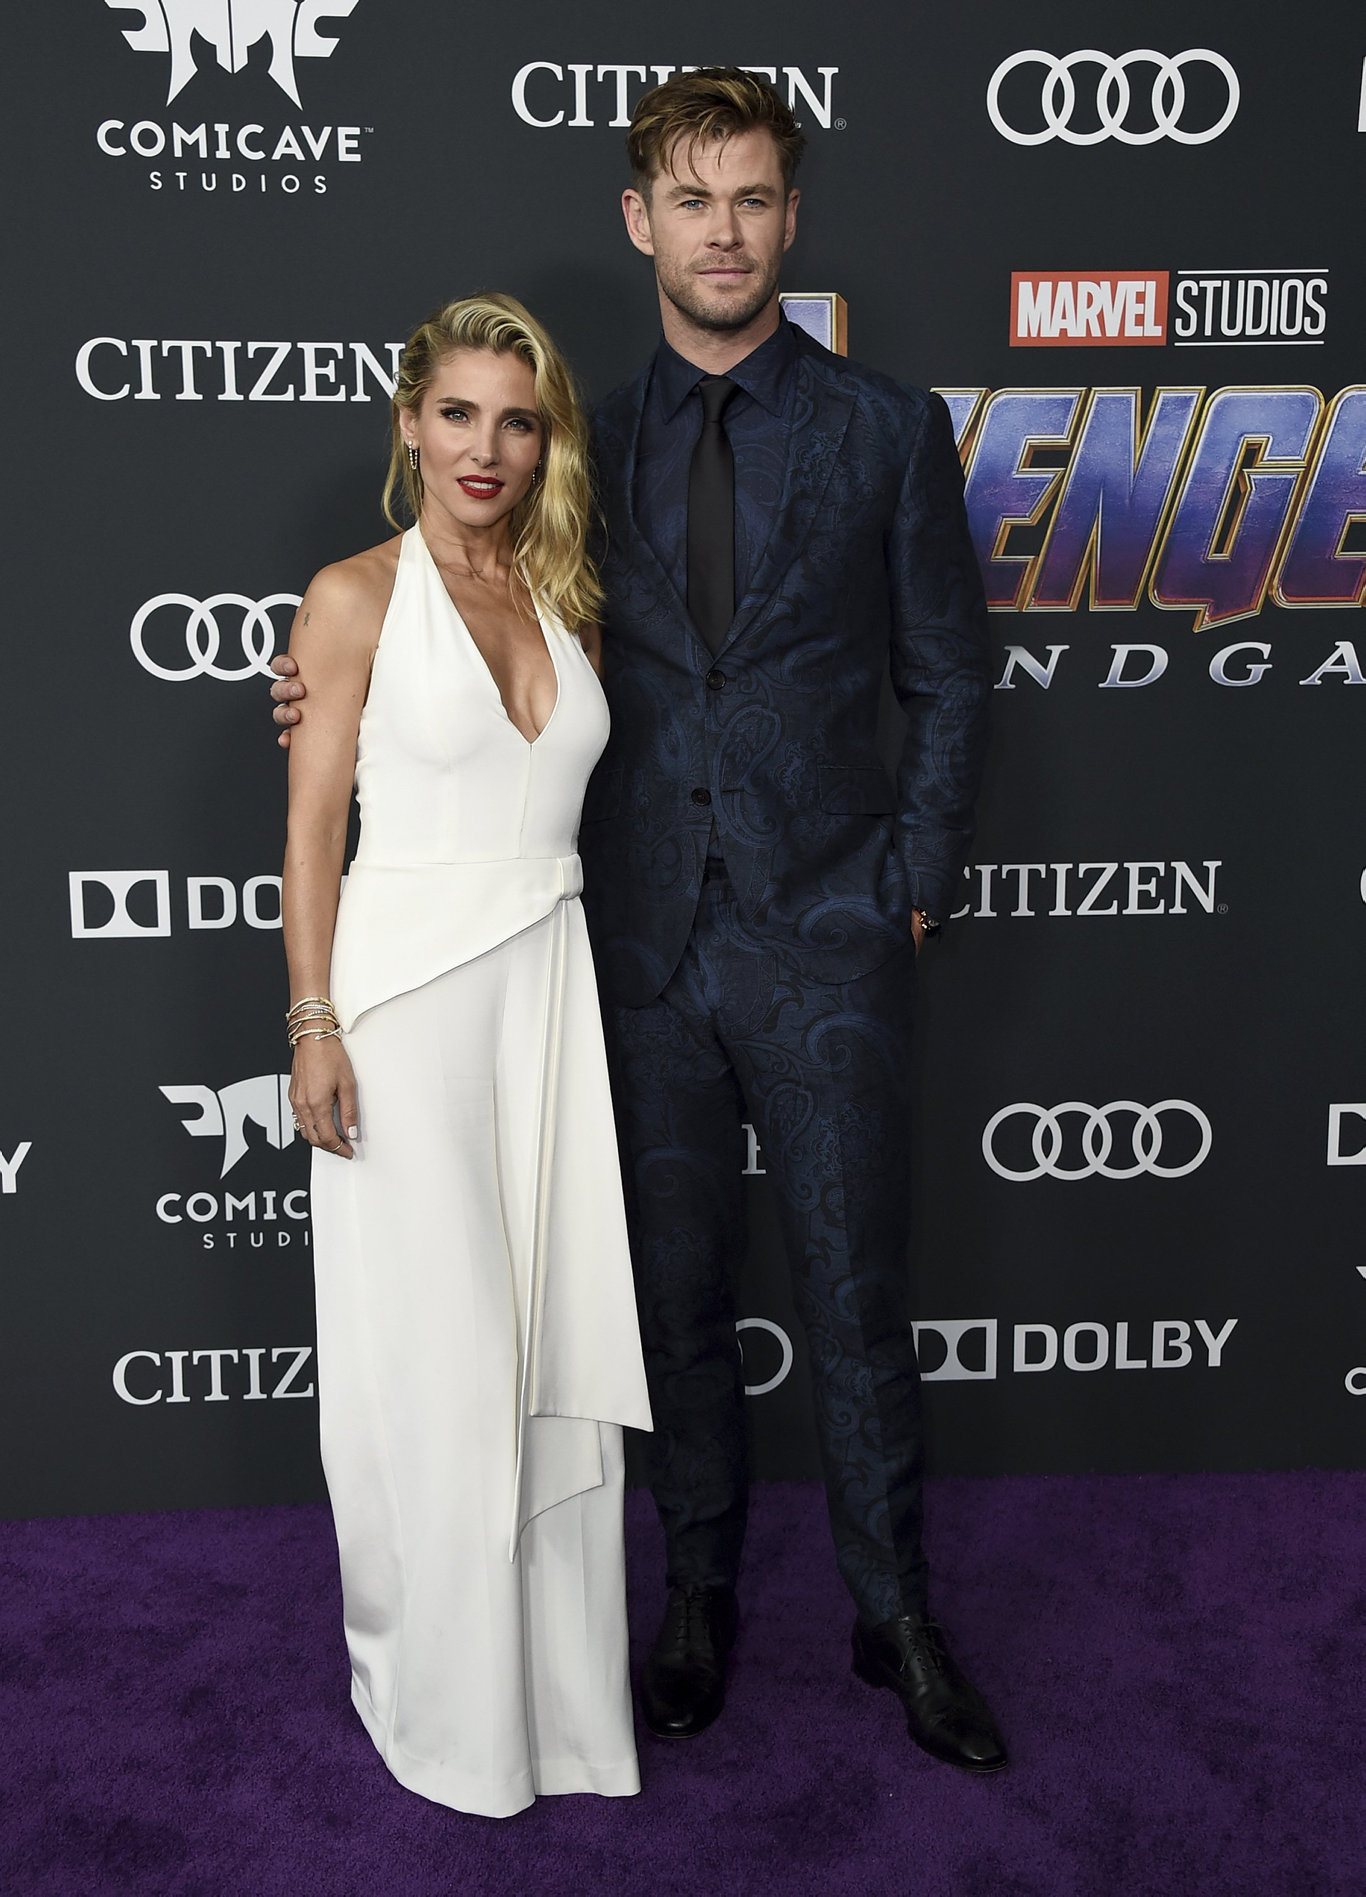 Elsa Pataky, left, and Chris Hemsworth arrive at the premiere of Avengers: Endgame at the Los Angeles Convention Center.